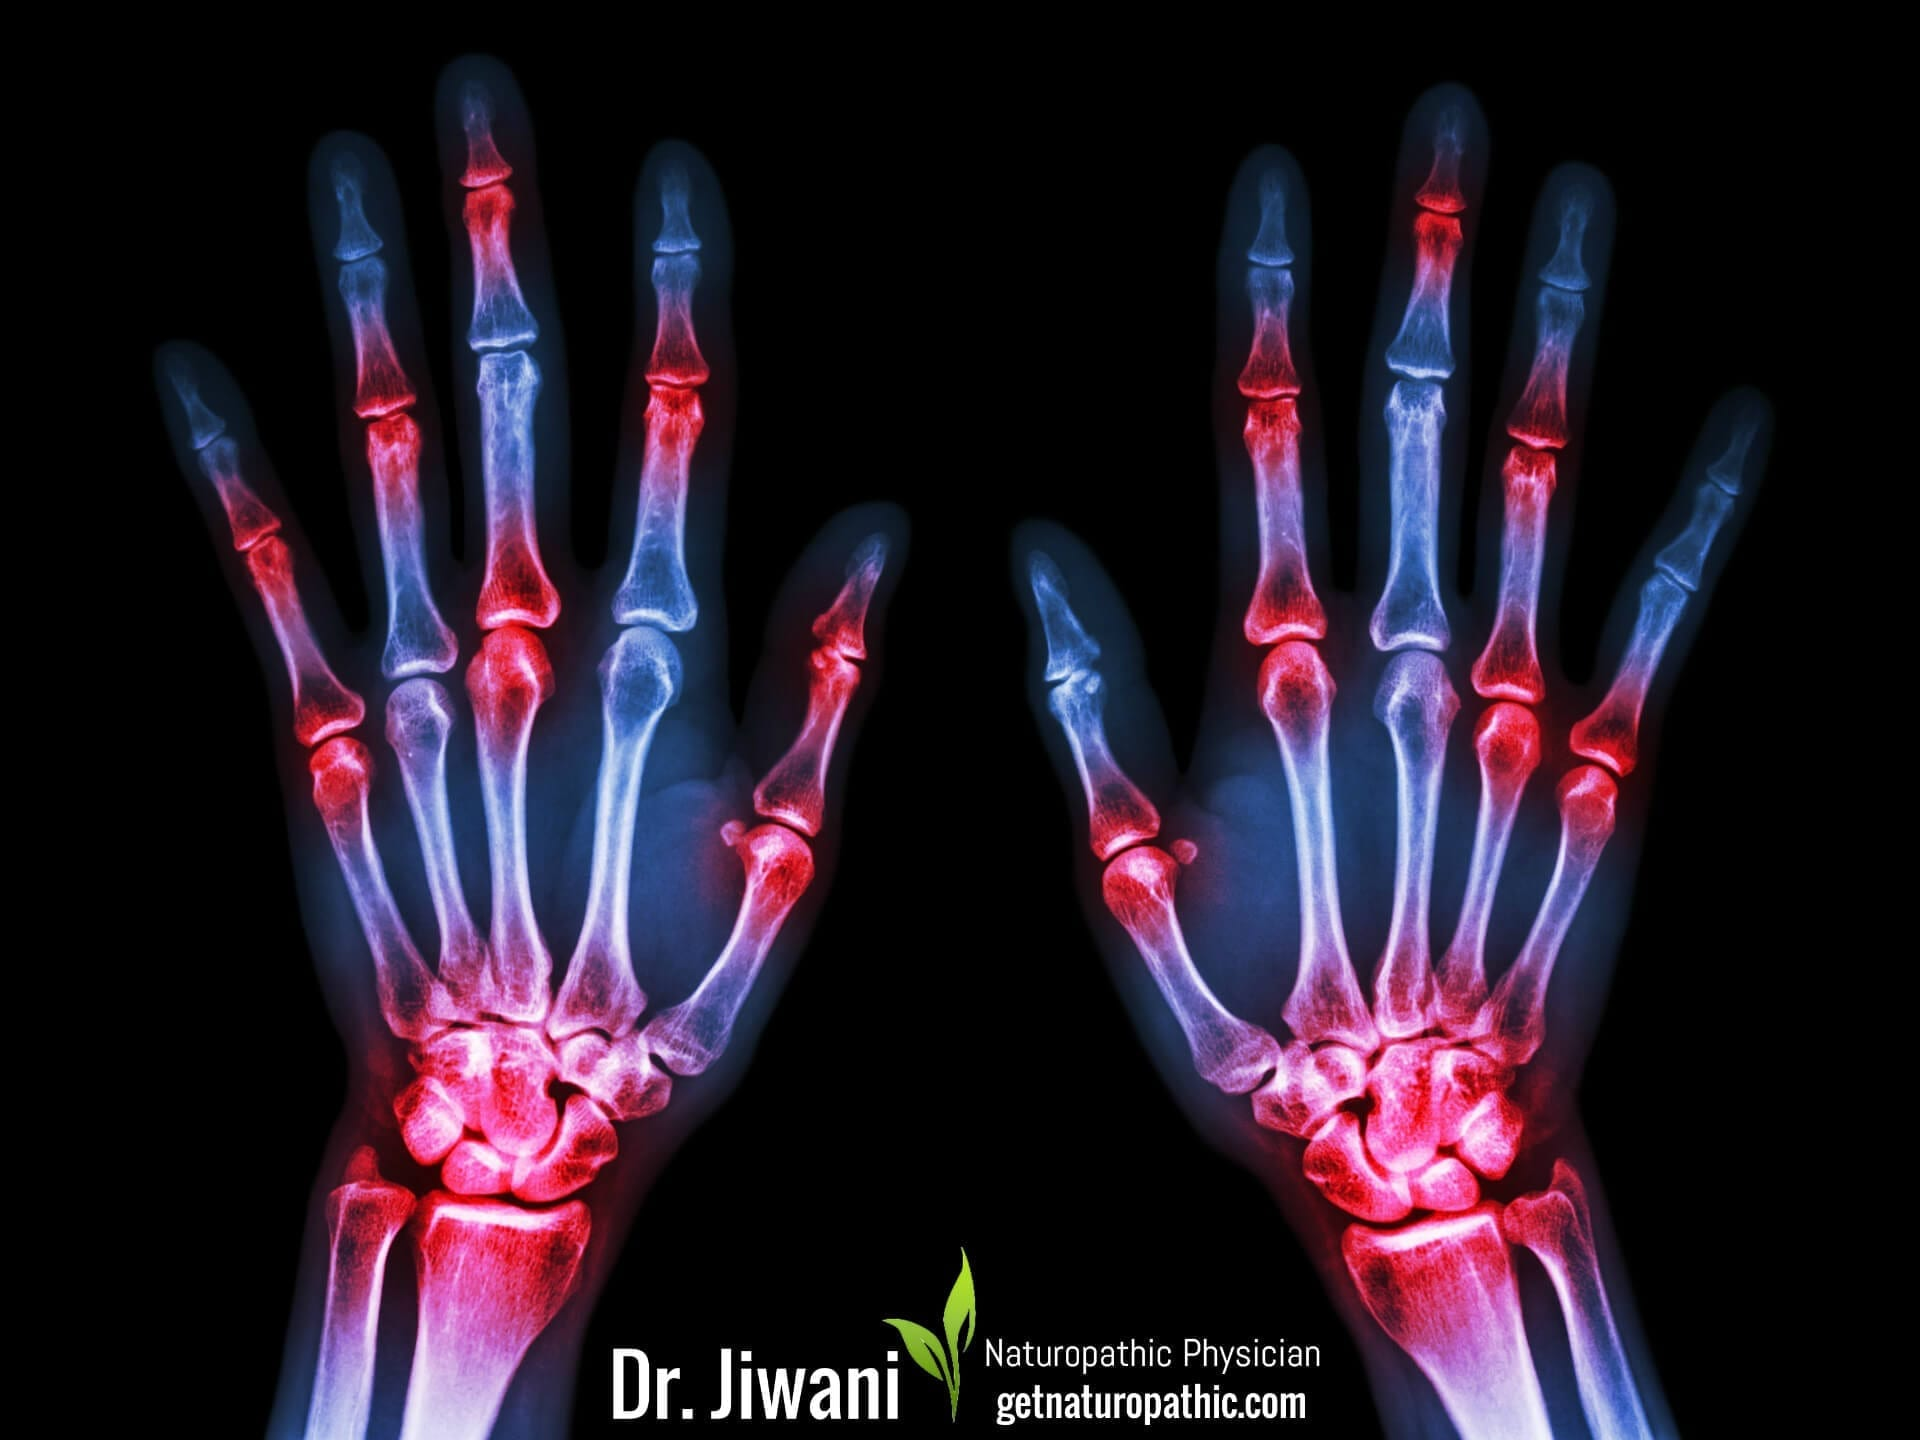 DrJiwani Intermittent Fasting for Health, Energy & Weight Loss Rheumatoid Arthritis* | Dr. Jiwani's Naturopathic Nuggets Blog